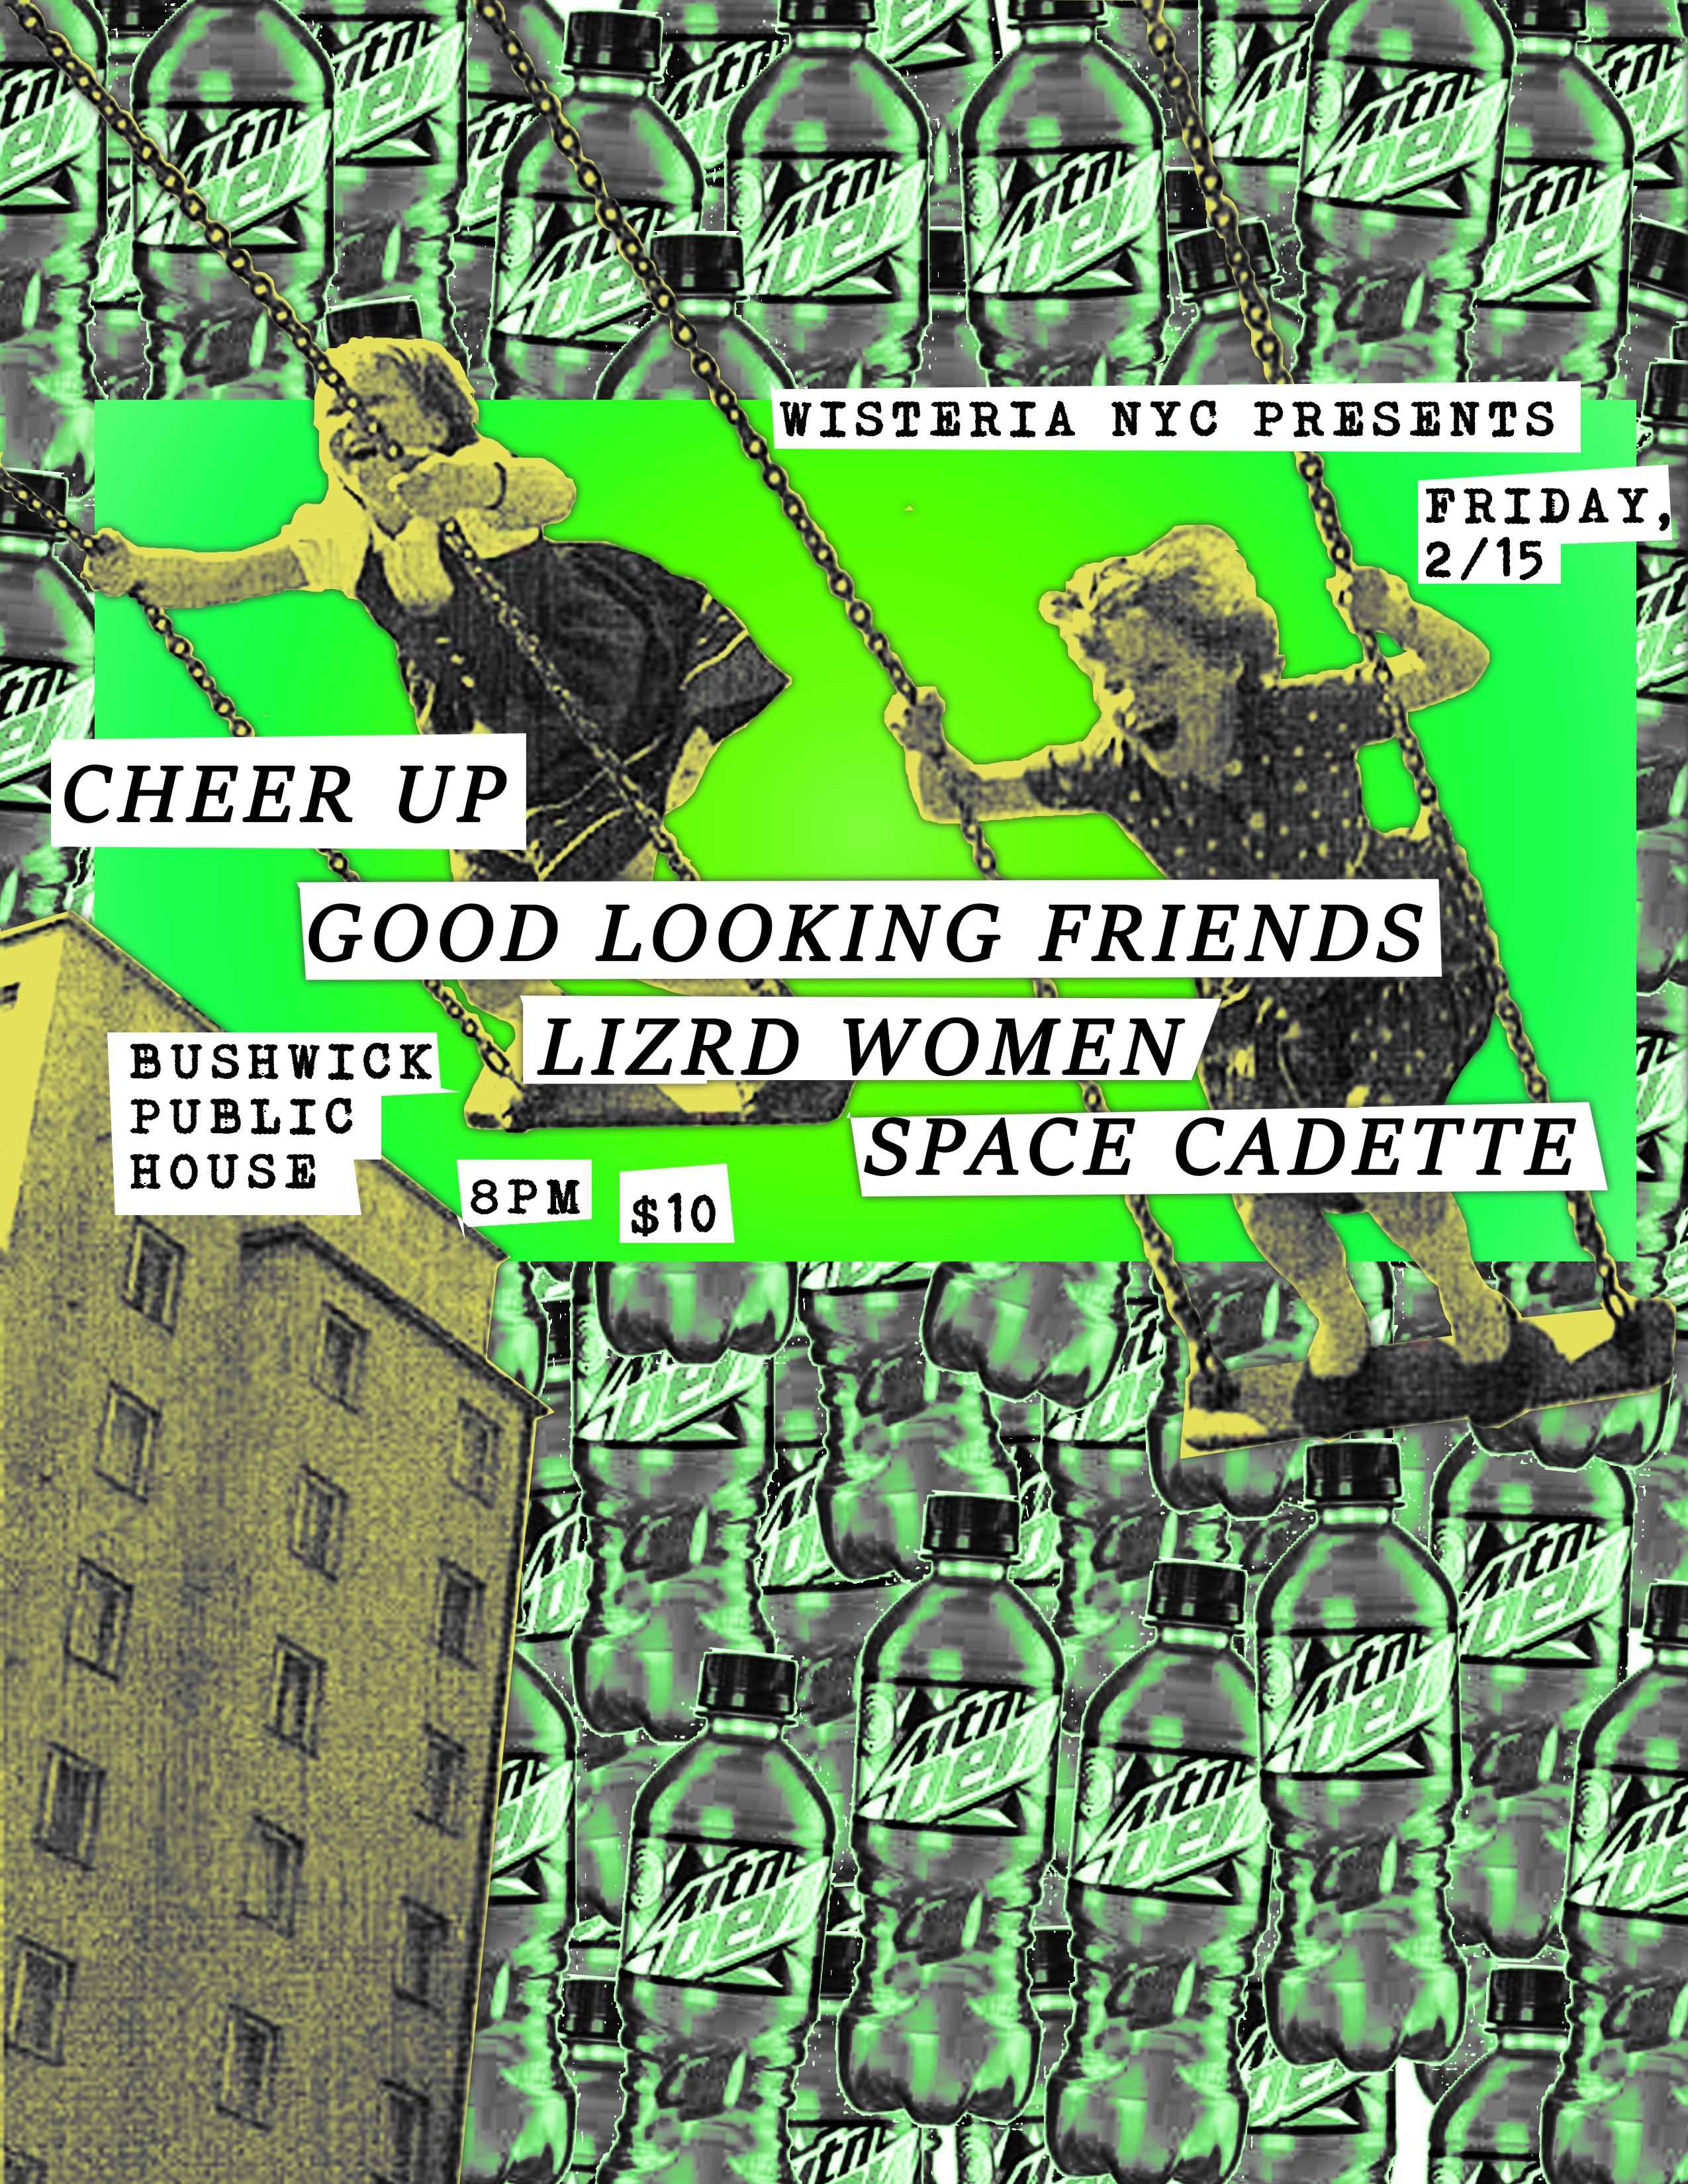 2/15/19 - Cheer Up, Good Looking Friends, LizRd Women, Space Cadette at Bushwick Public House, Brooklyn, NY